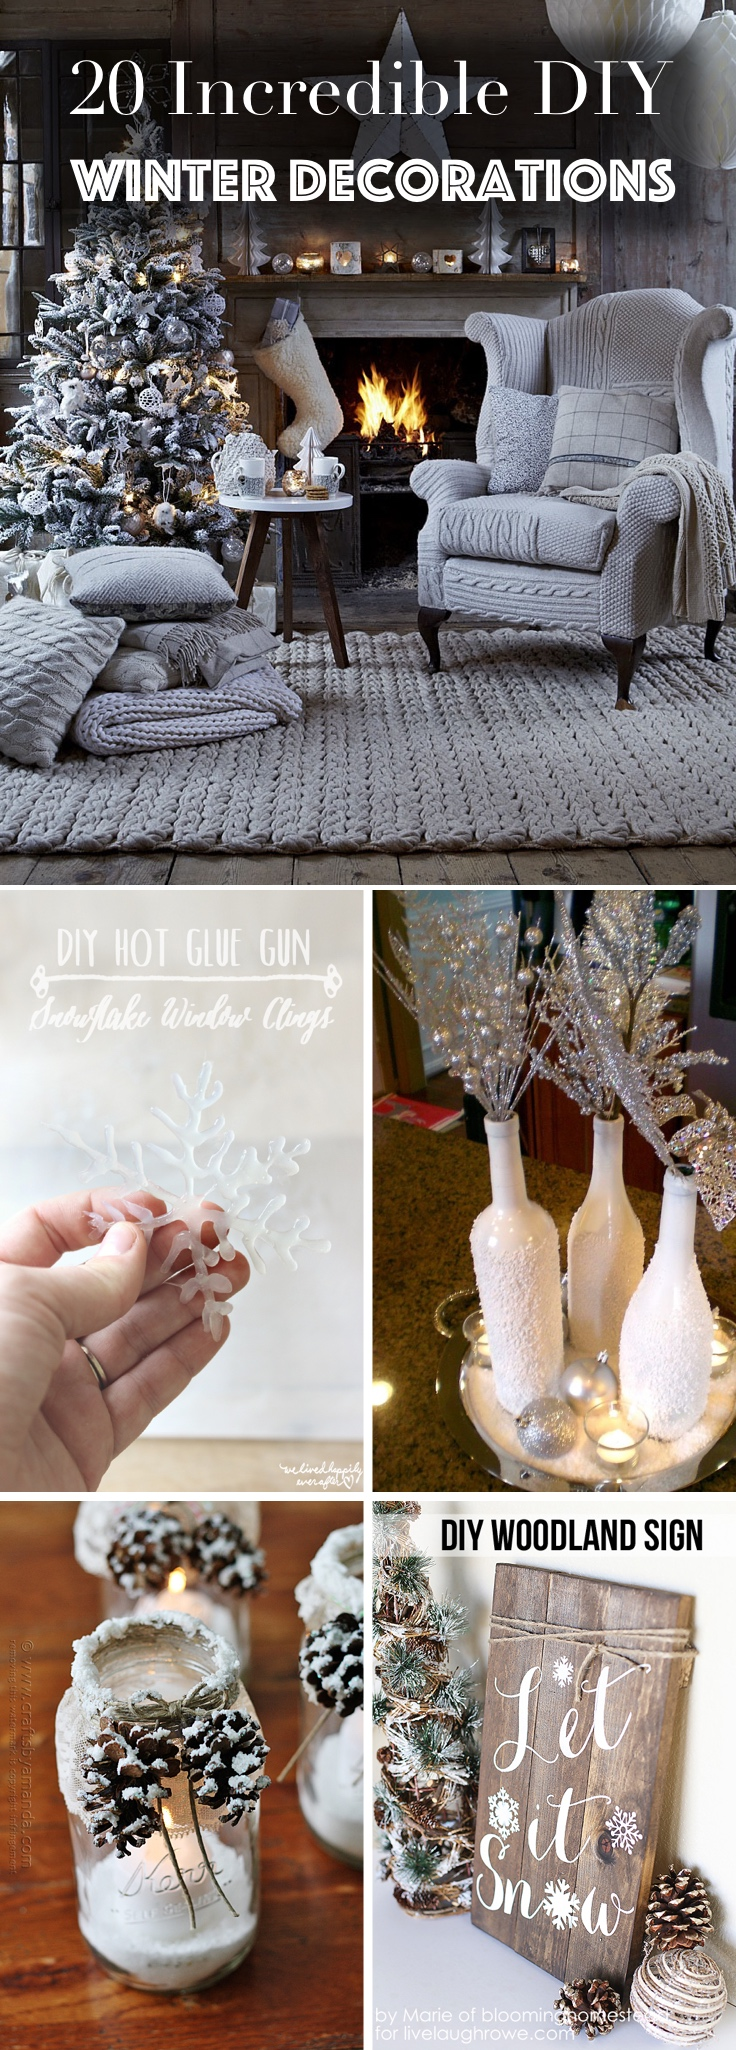 DIY Winter Decorations